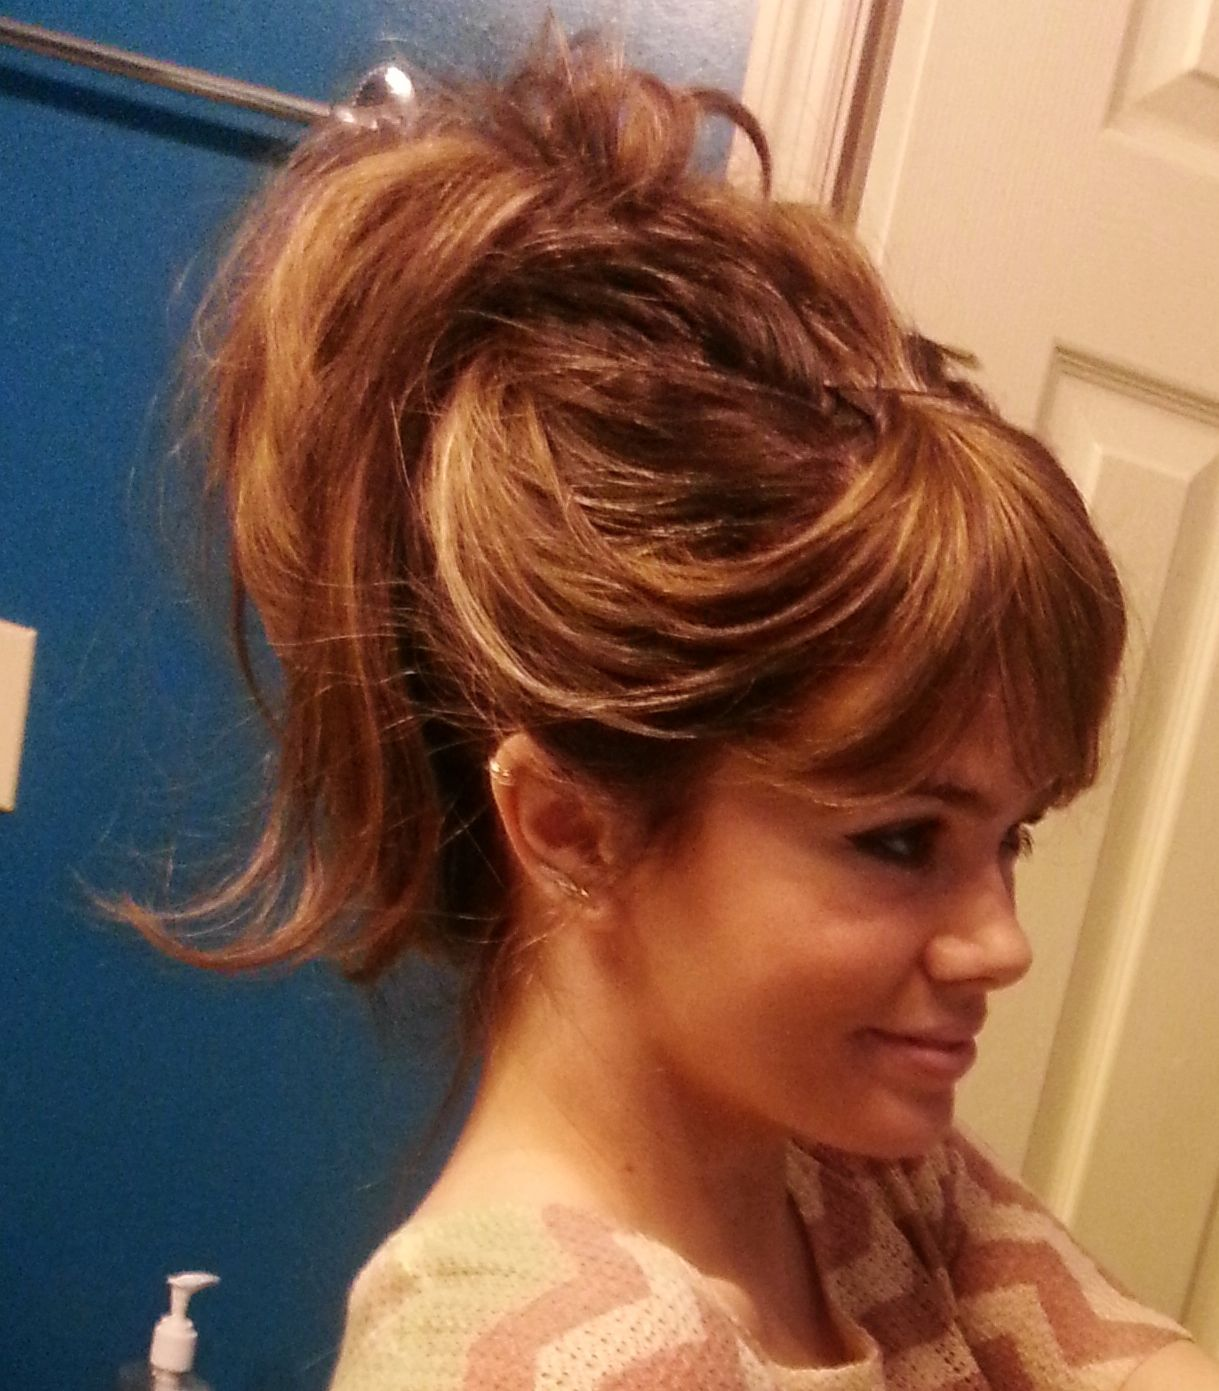 Fake Bangs Hairstyle Awesome Fake It Bangs Use Your Own Hair To Create Bangs Pull A Section Of